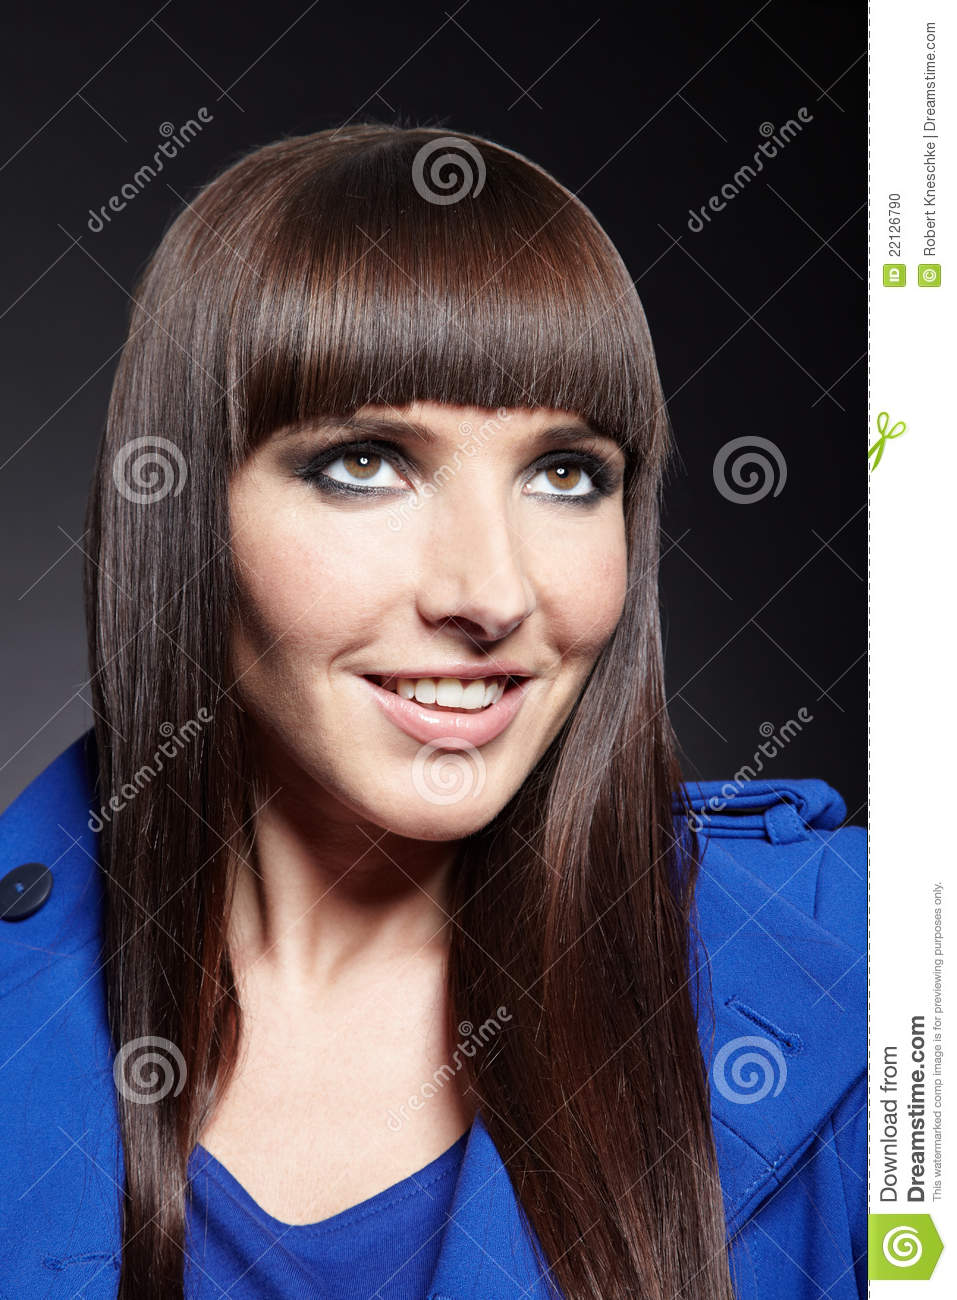 Smiling Woman With Pageboy Haircut Stock Photo Image Of Hope High